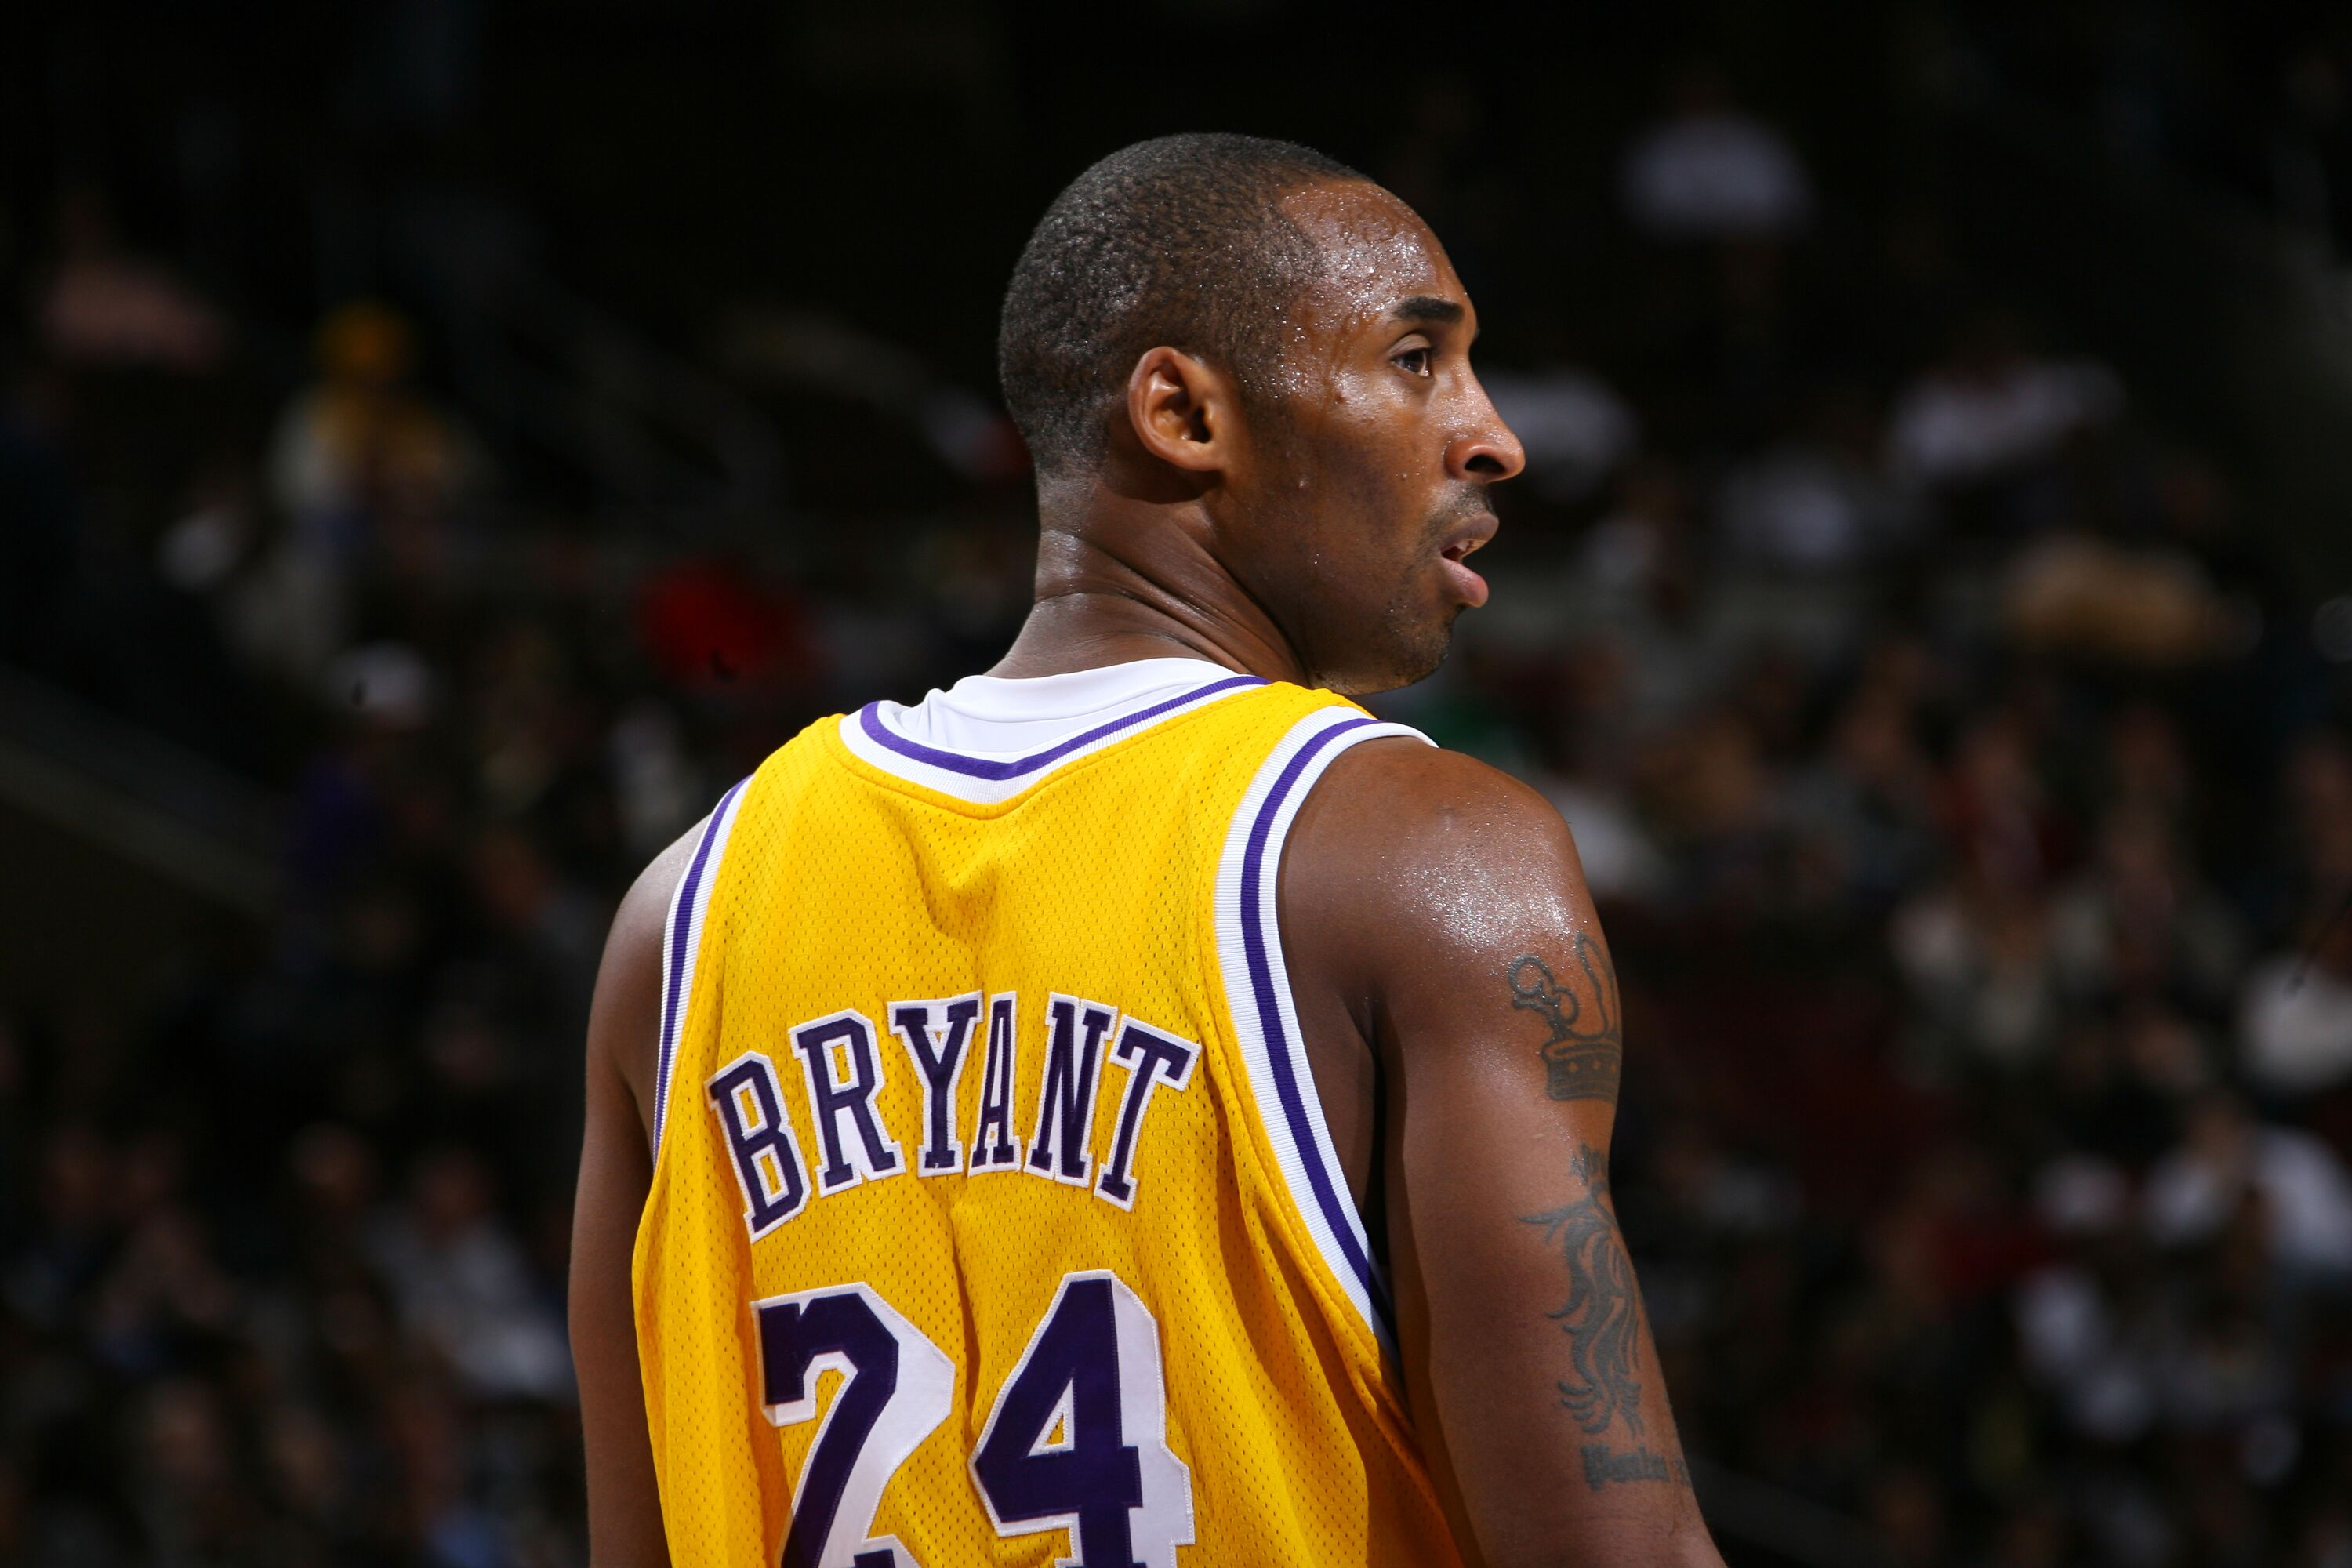 A portrait of Kobe Bryant at an NBA game | Source: Getty Images/GlobalImagesUkraine